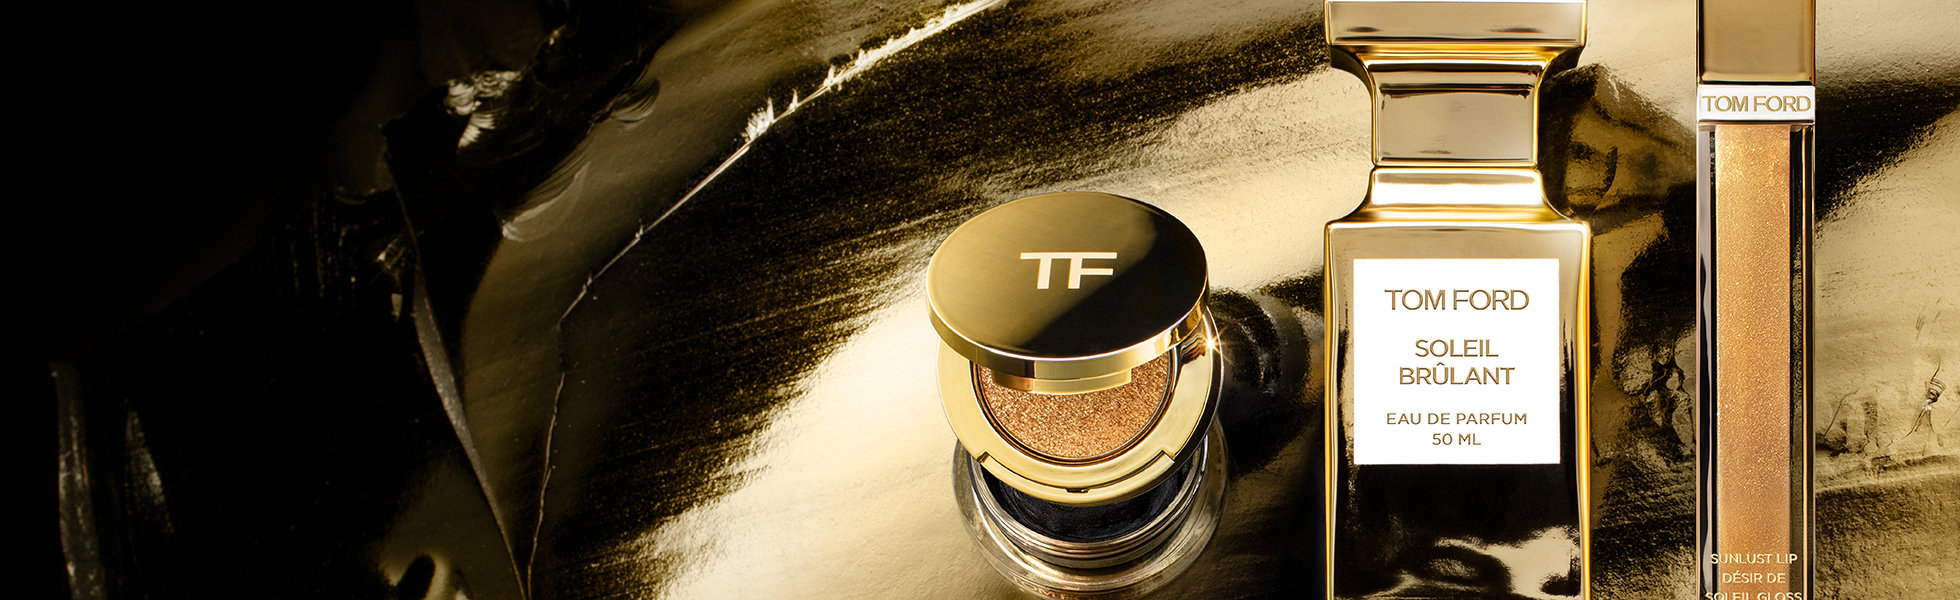 Tom Ford Beauty Soleil